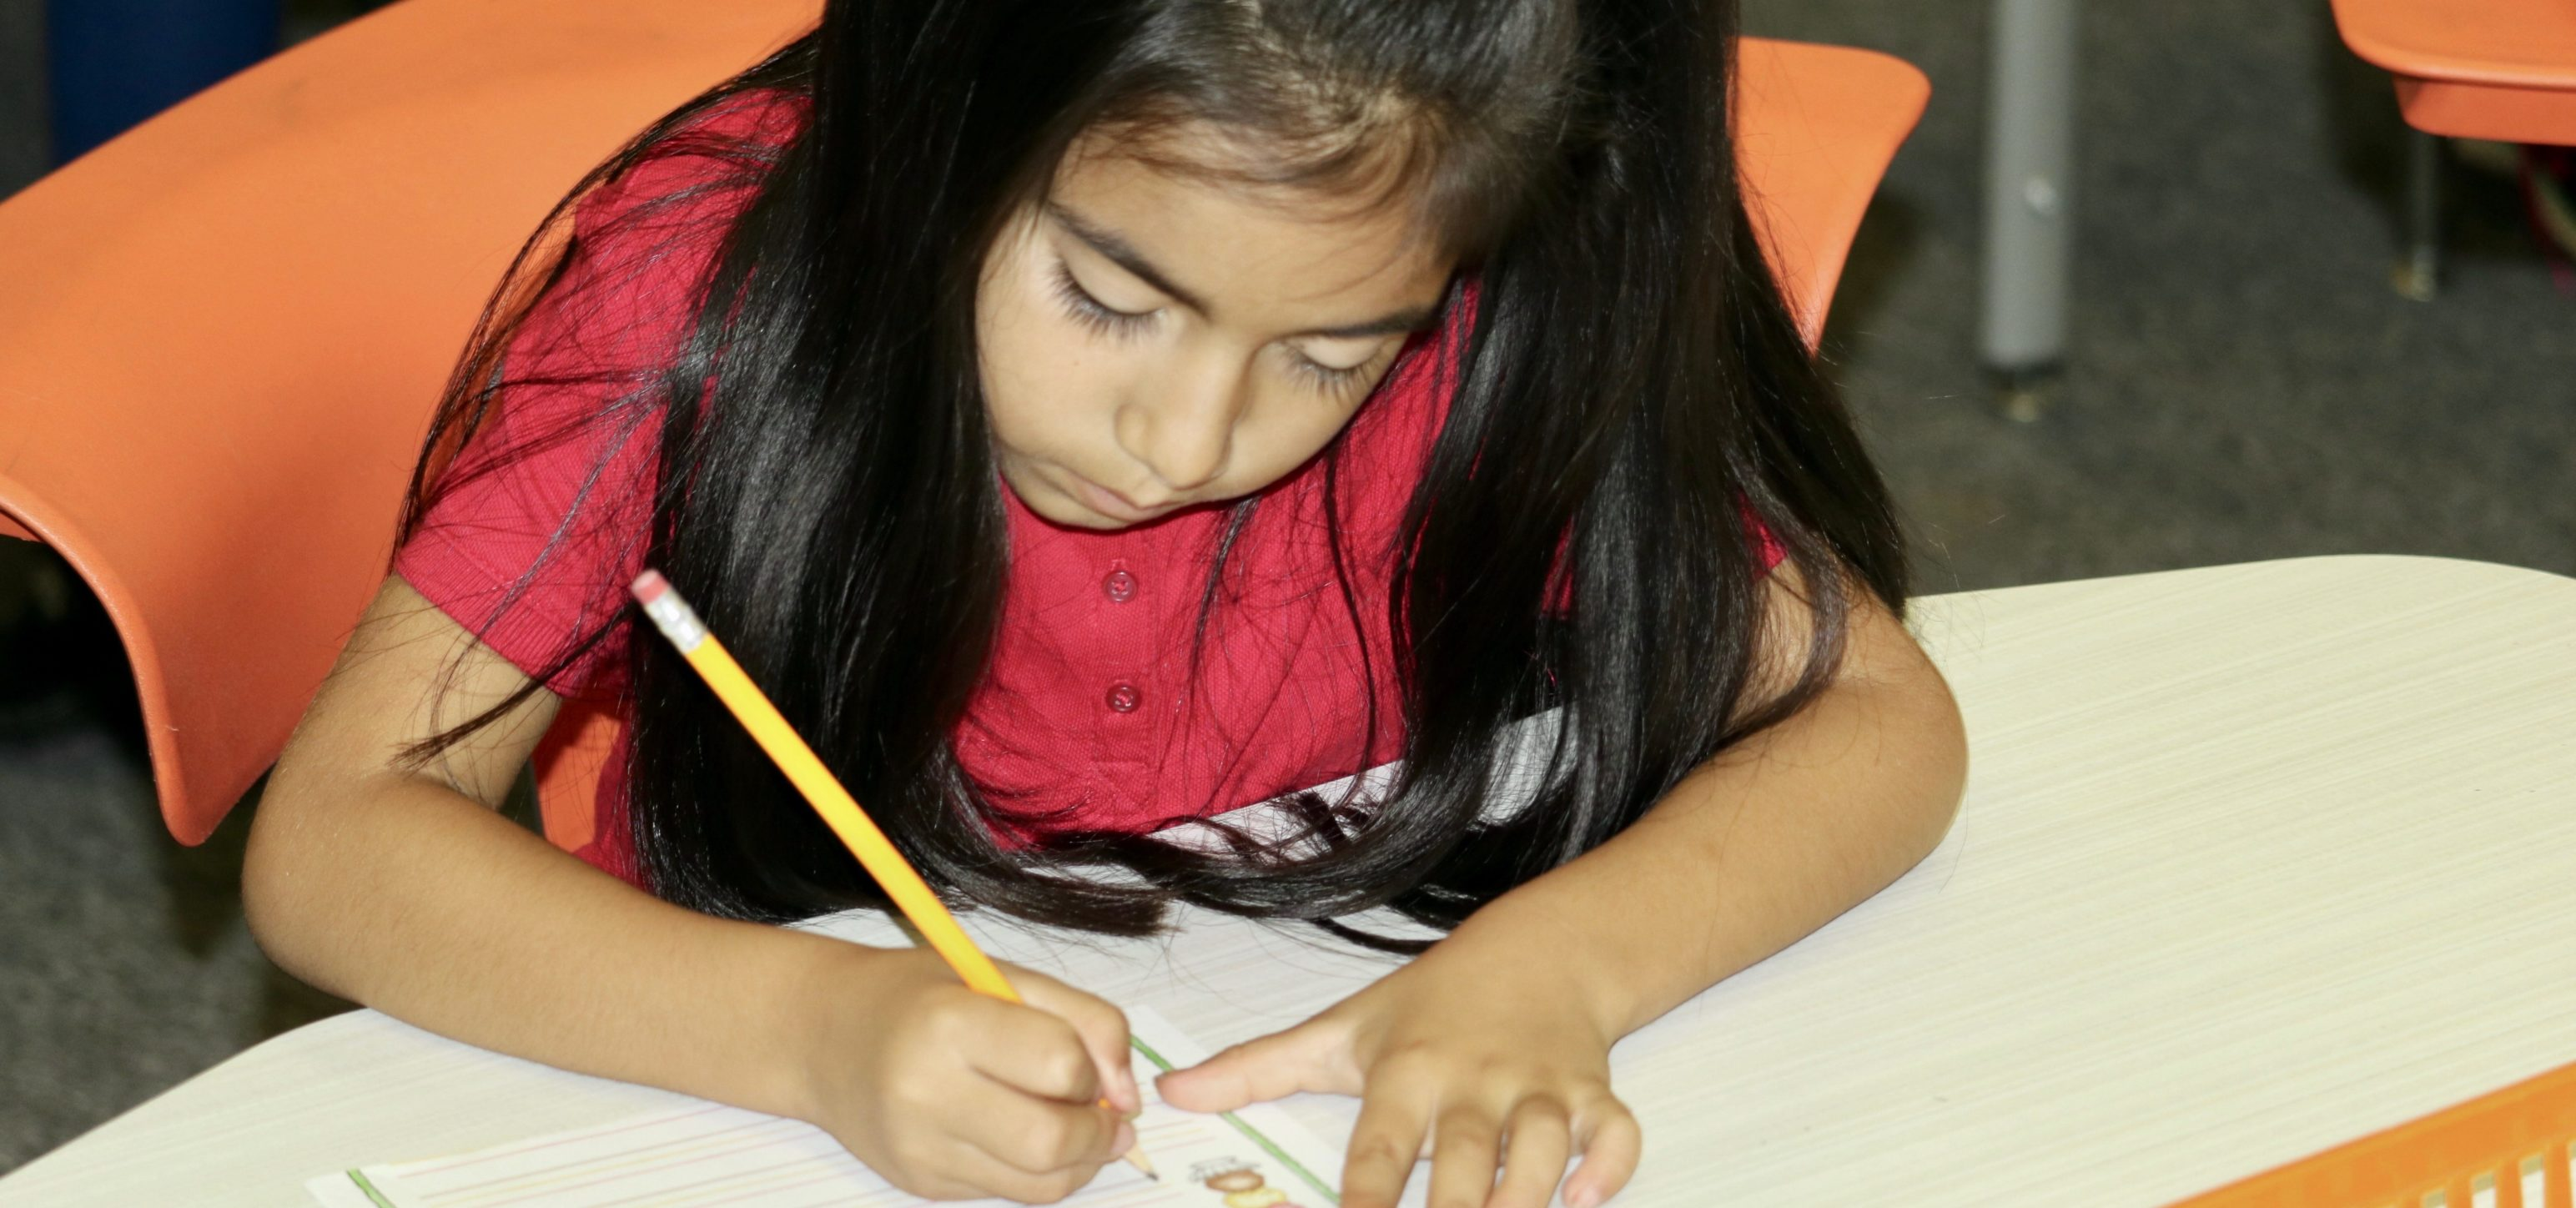 Girl in first grade concentrates on her schoolwork.